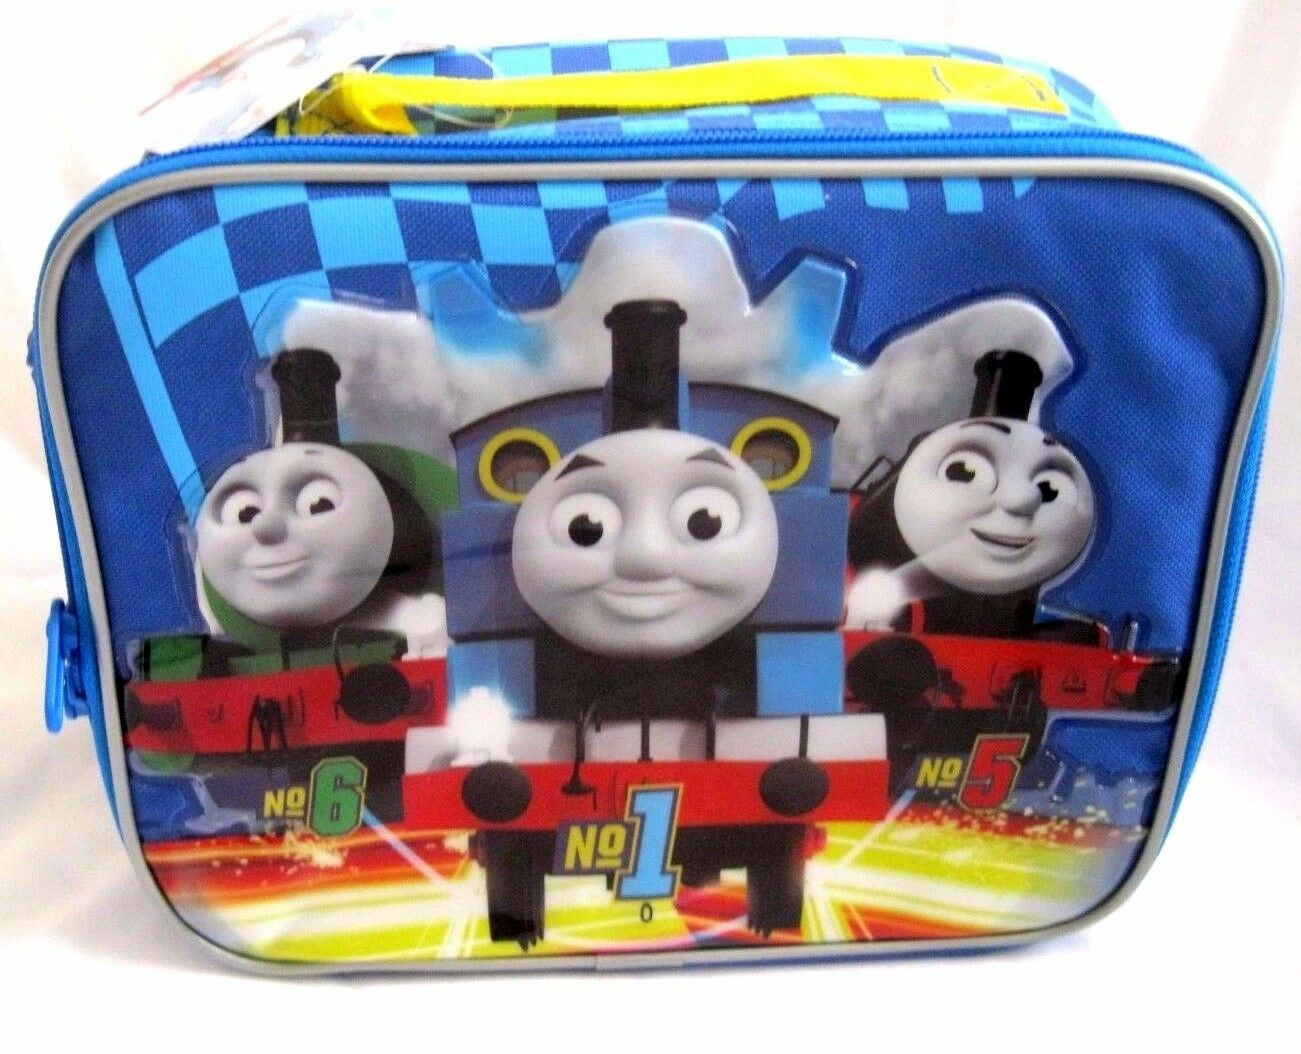 THOMAS THE TRAIN AND FRIENDS Blau INSULATED LUNCH BAG LUNCHBOX-BRAND NEW